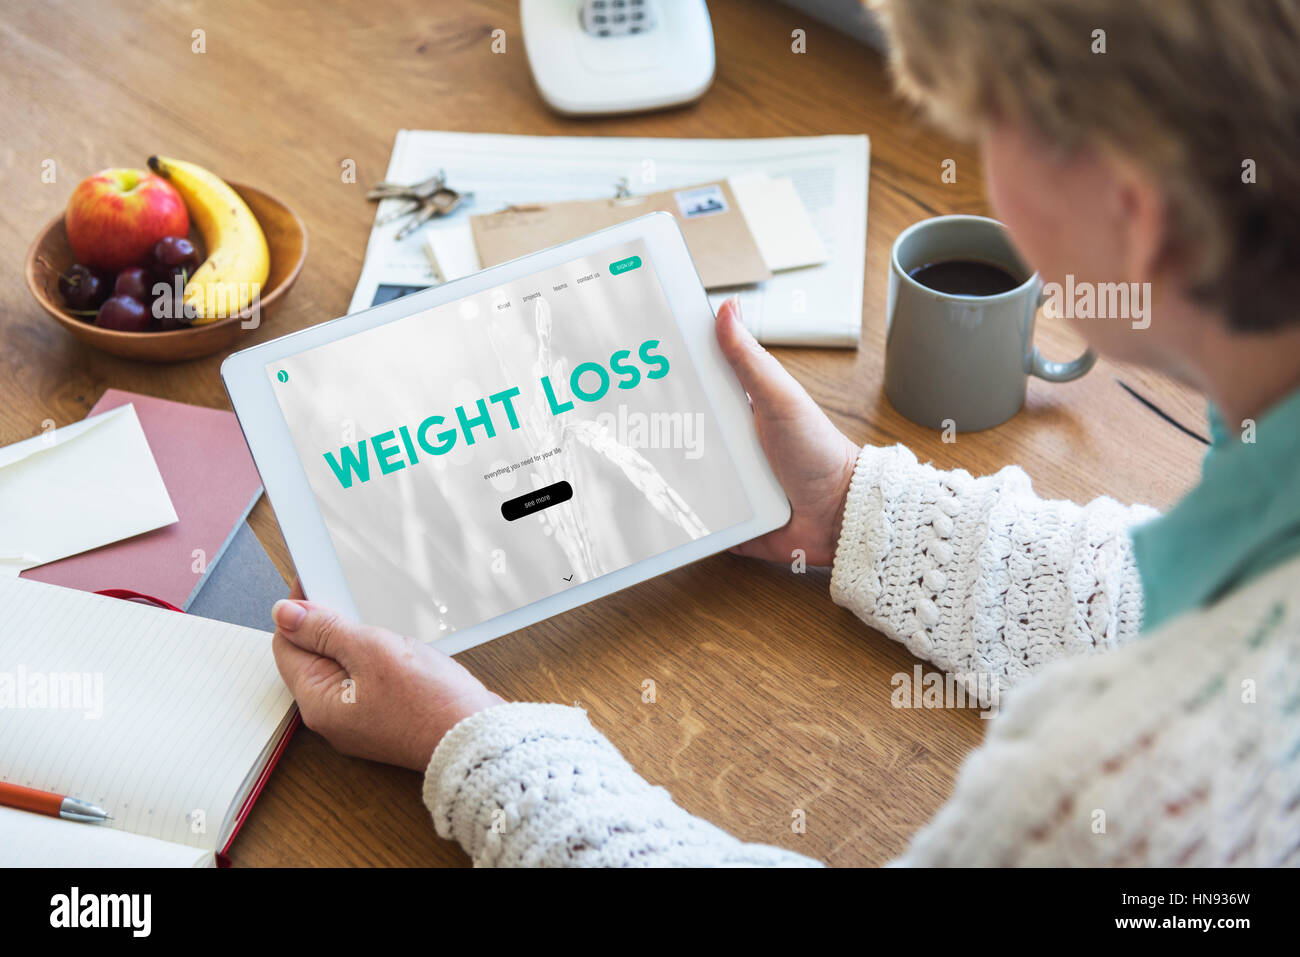 Healthy lifestyle online webpage interface - Stock Image